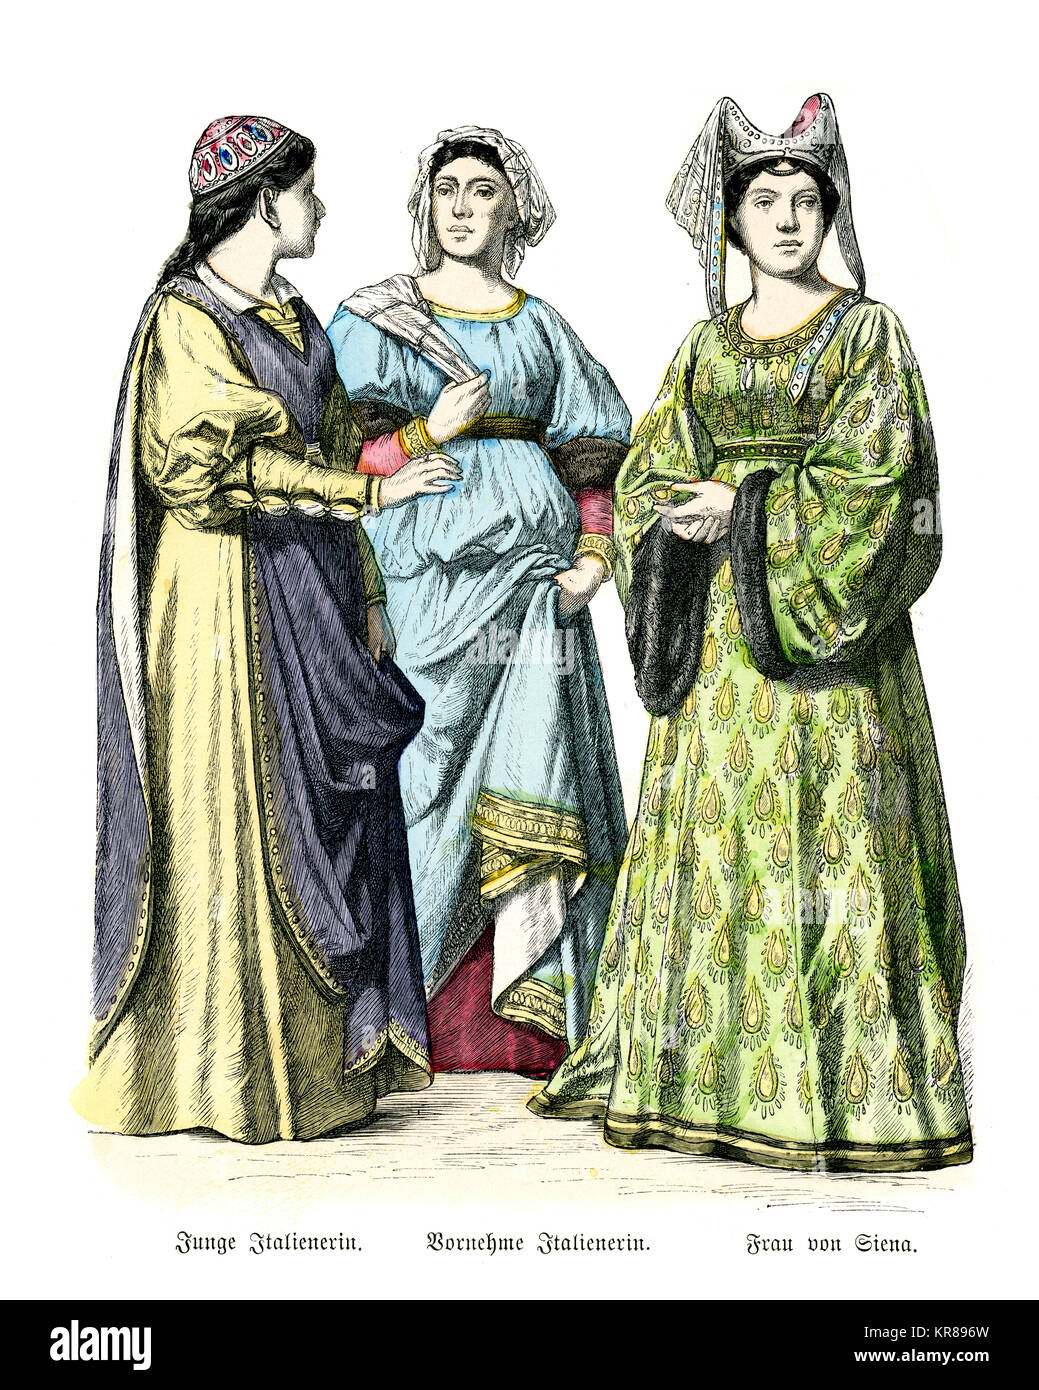 Vintage engraving of Italian women in the fashions of medieval Italy, 14th Century - Stock Image